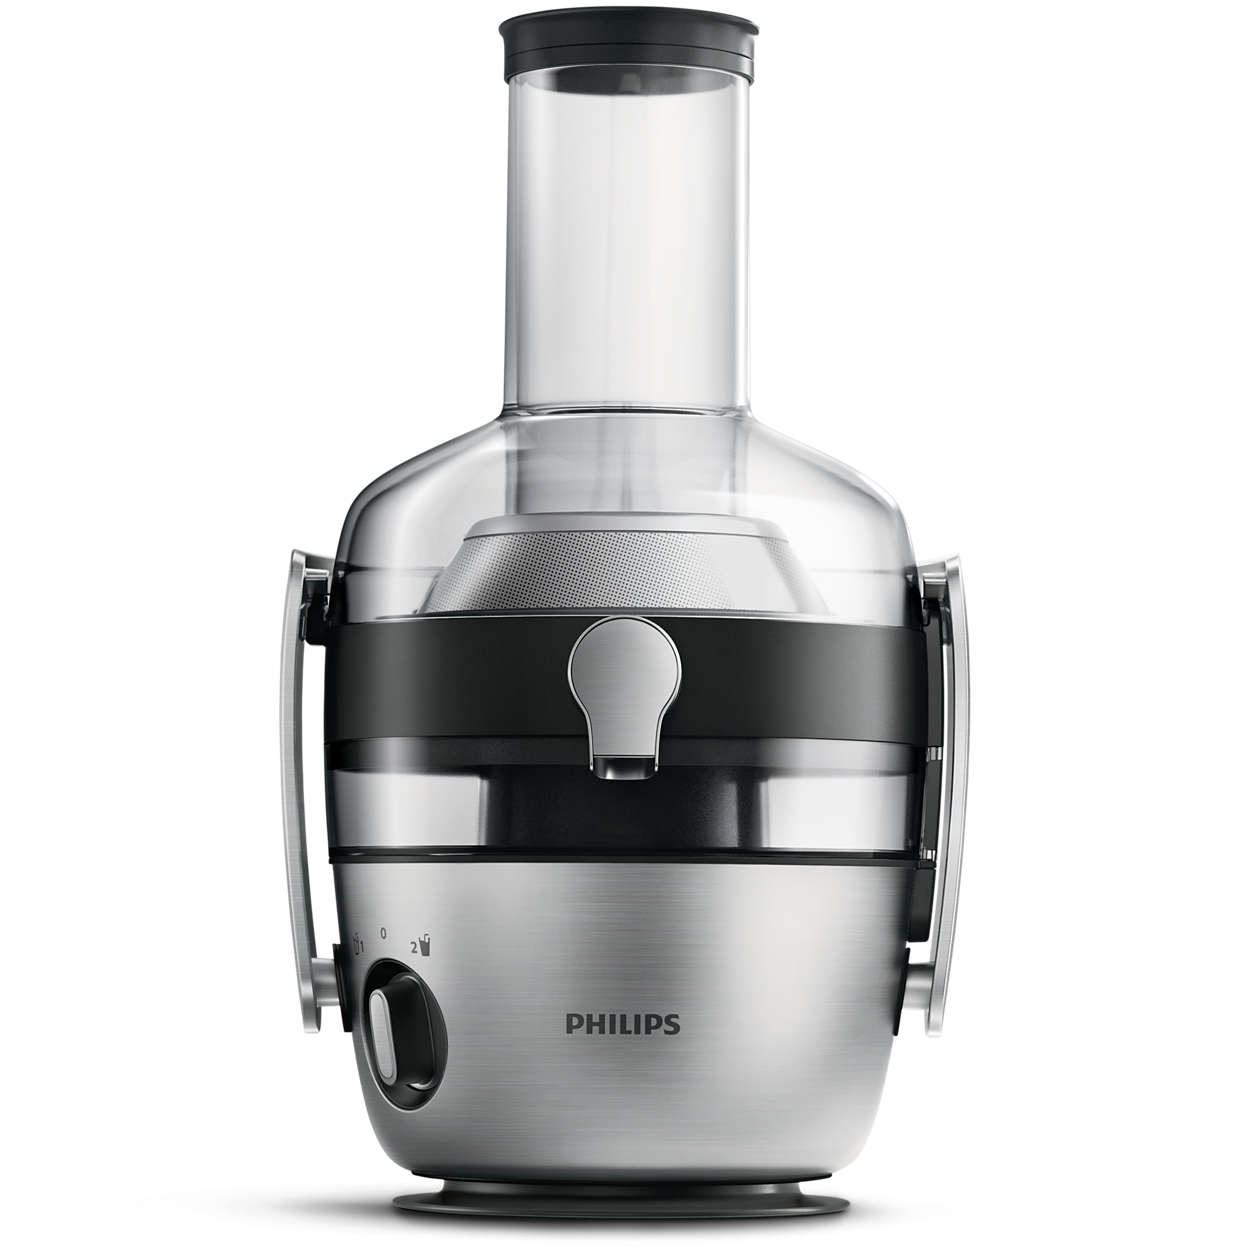 Philips Avance HR1922 centrifugal